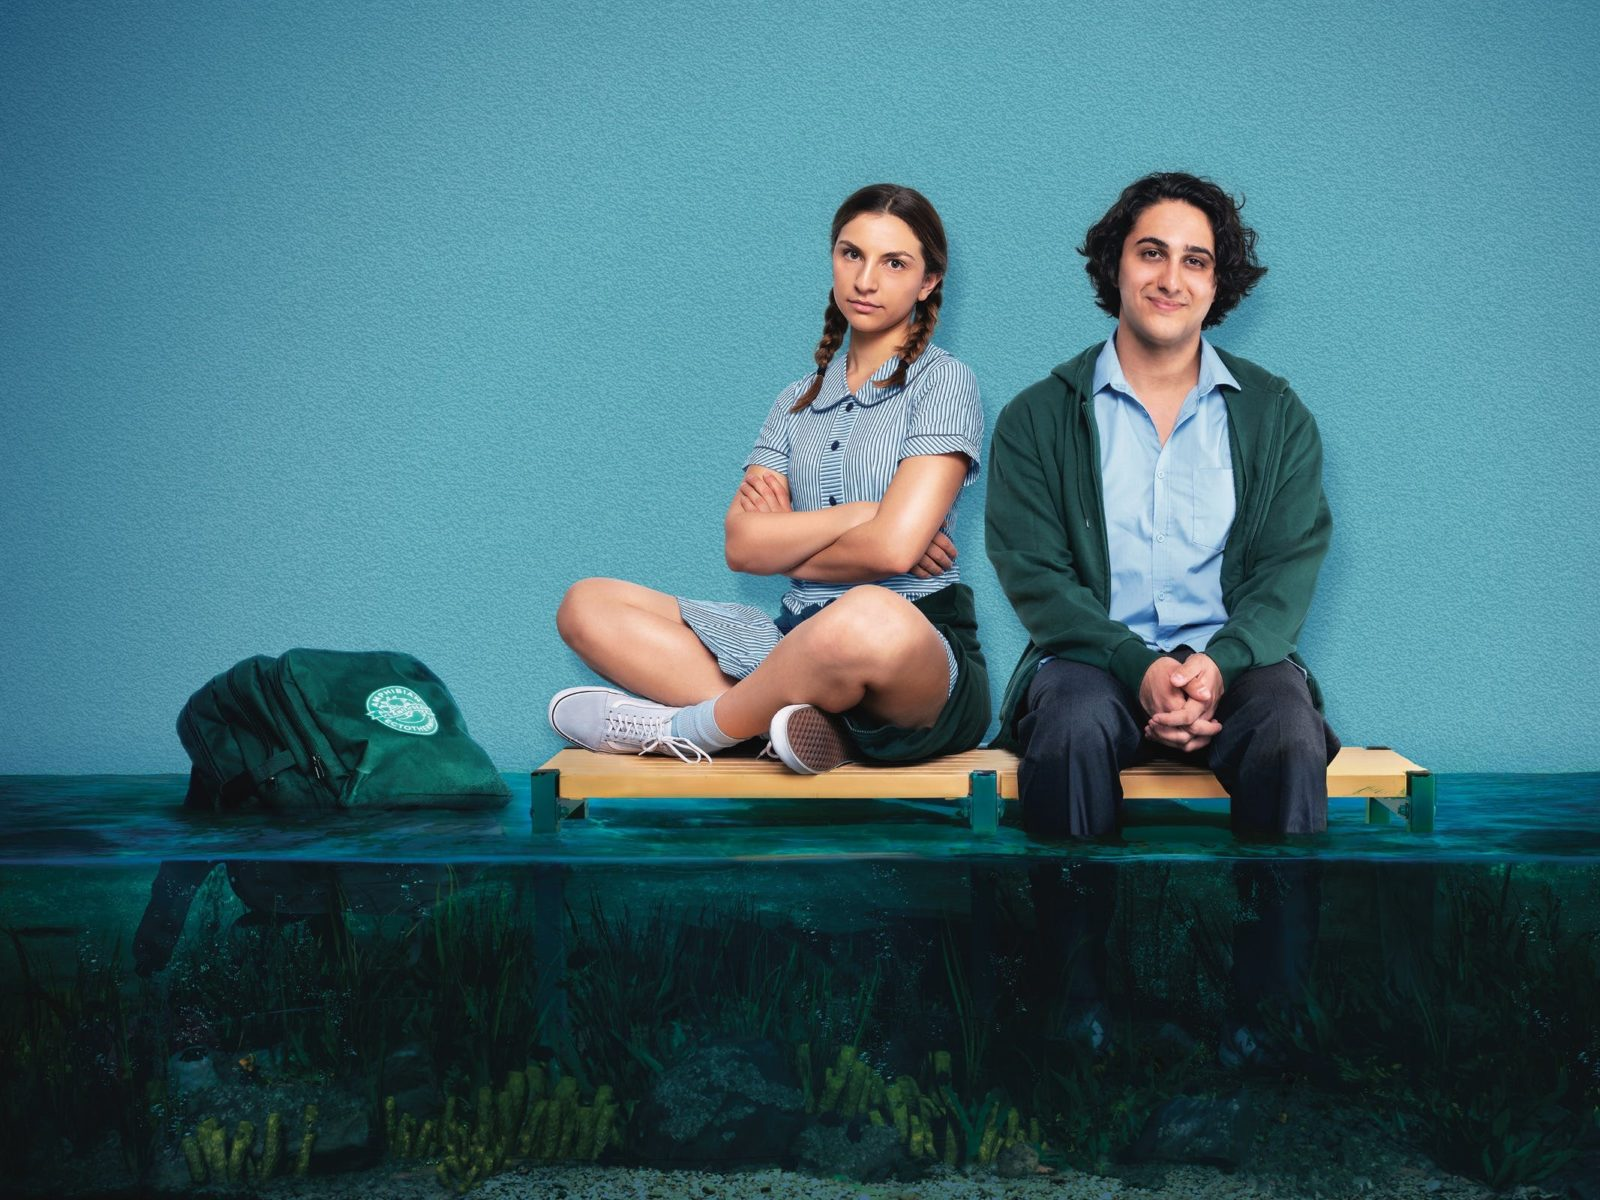 Two students sit on a school bench. One of them has their legs partially submerged in murky water